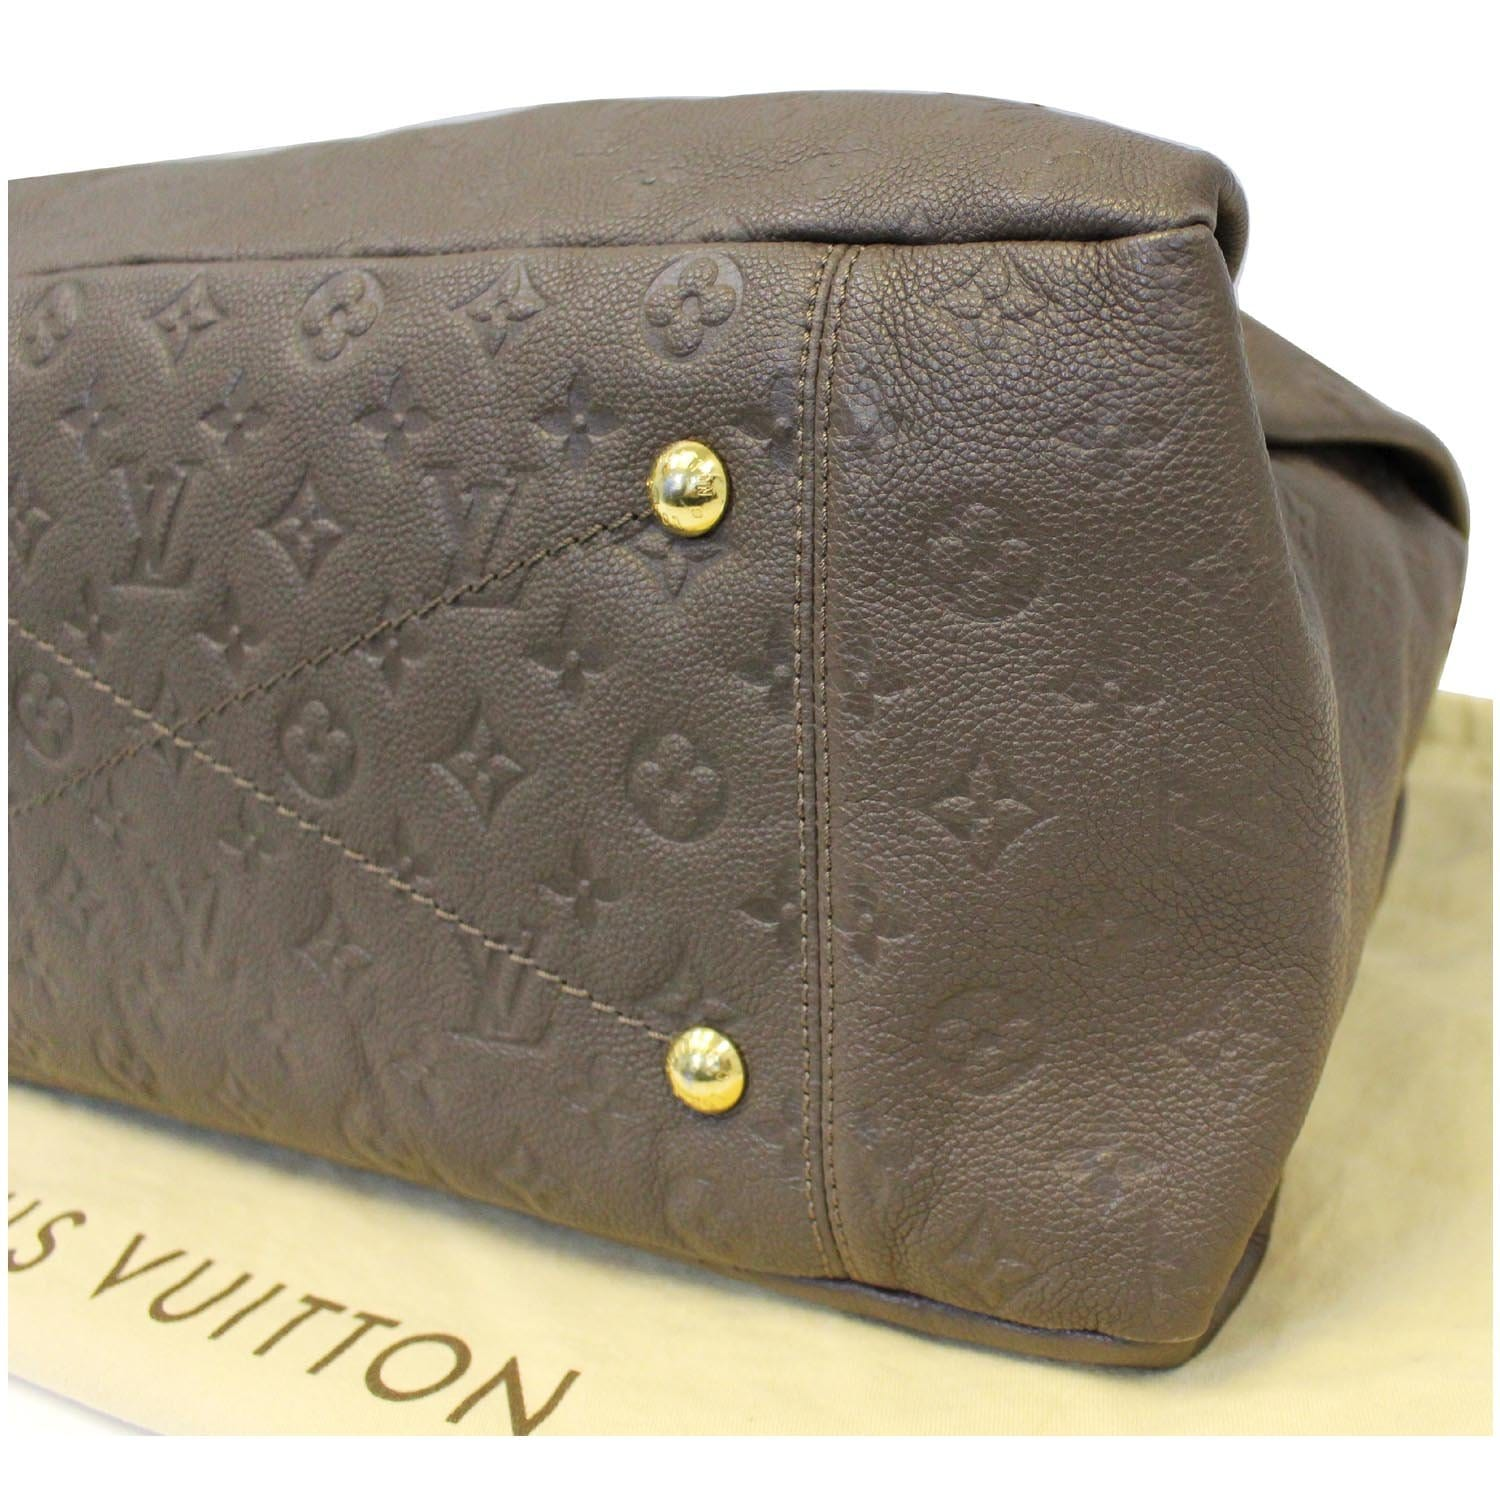 ca9daad2002a LOUIS VUITTON Artsy MM Monogram Empreinte Leather Shoulder Bag-US ...